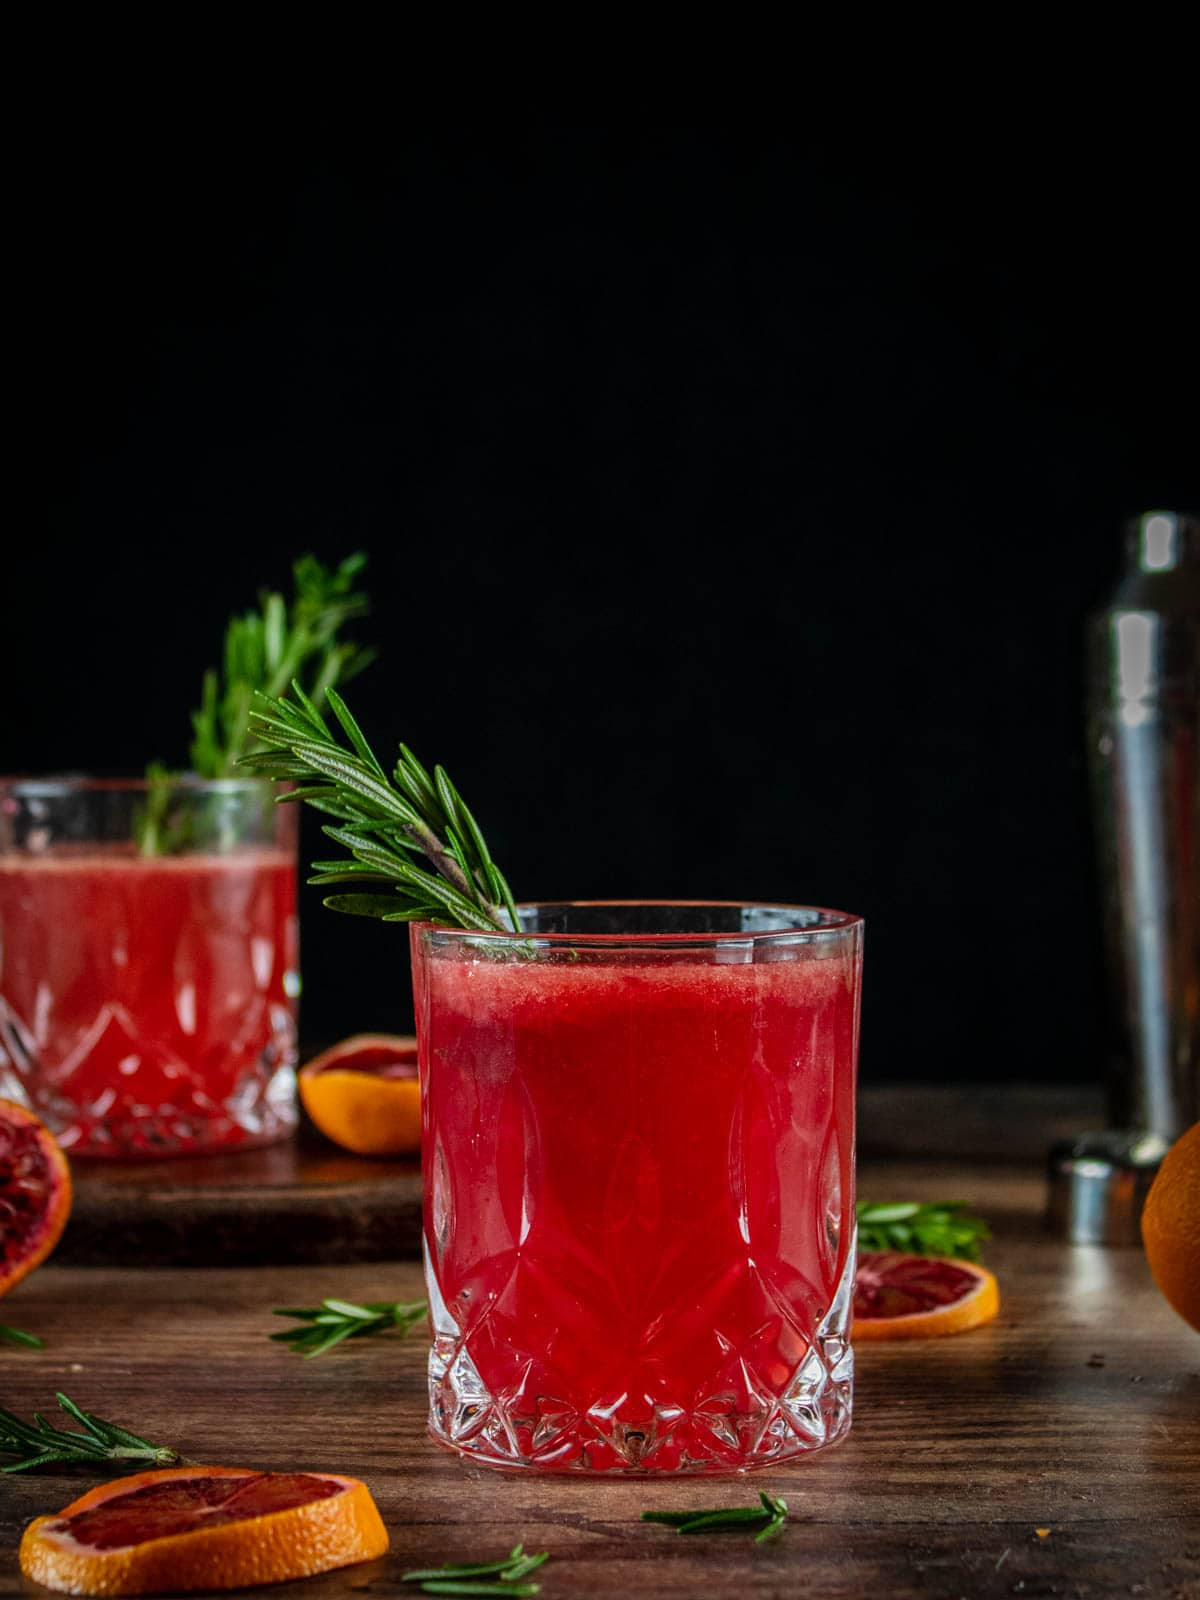 clear glasses with blood orange cocktail and rosemary garnish